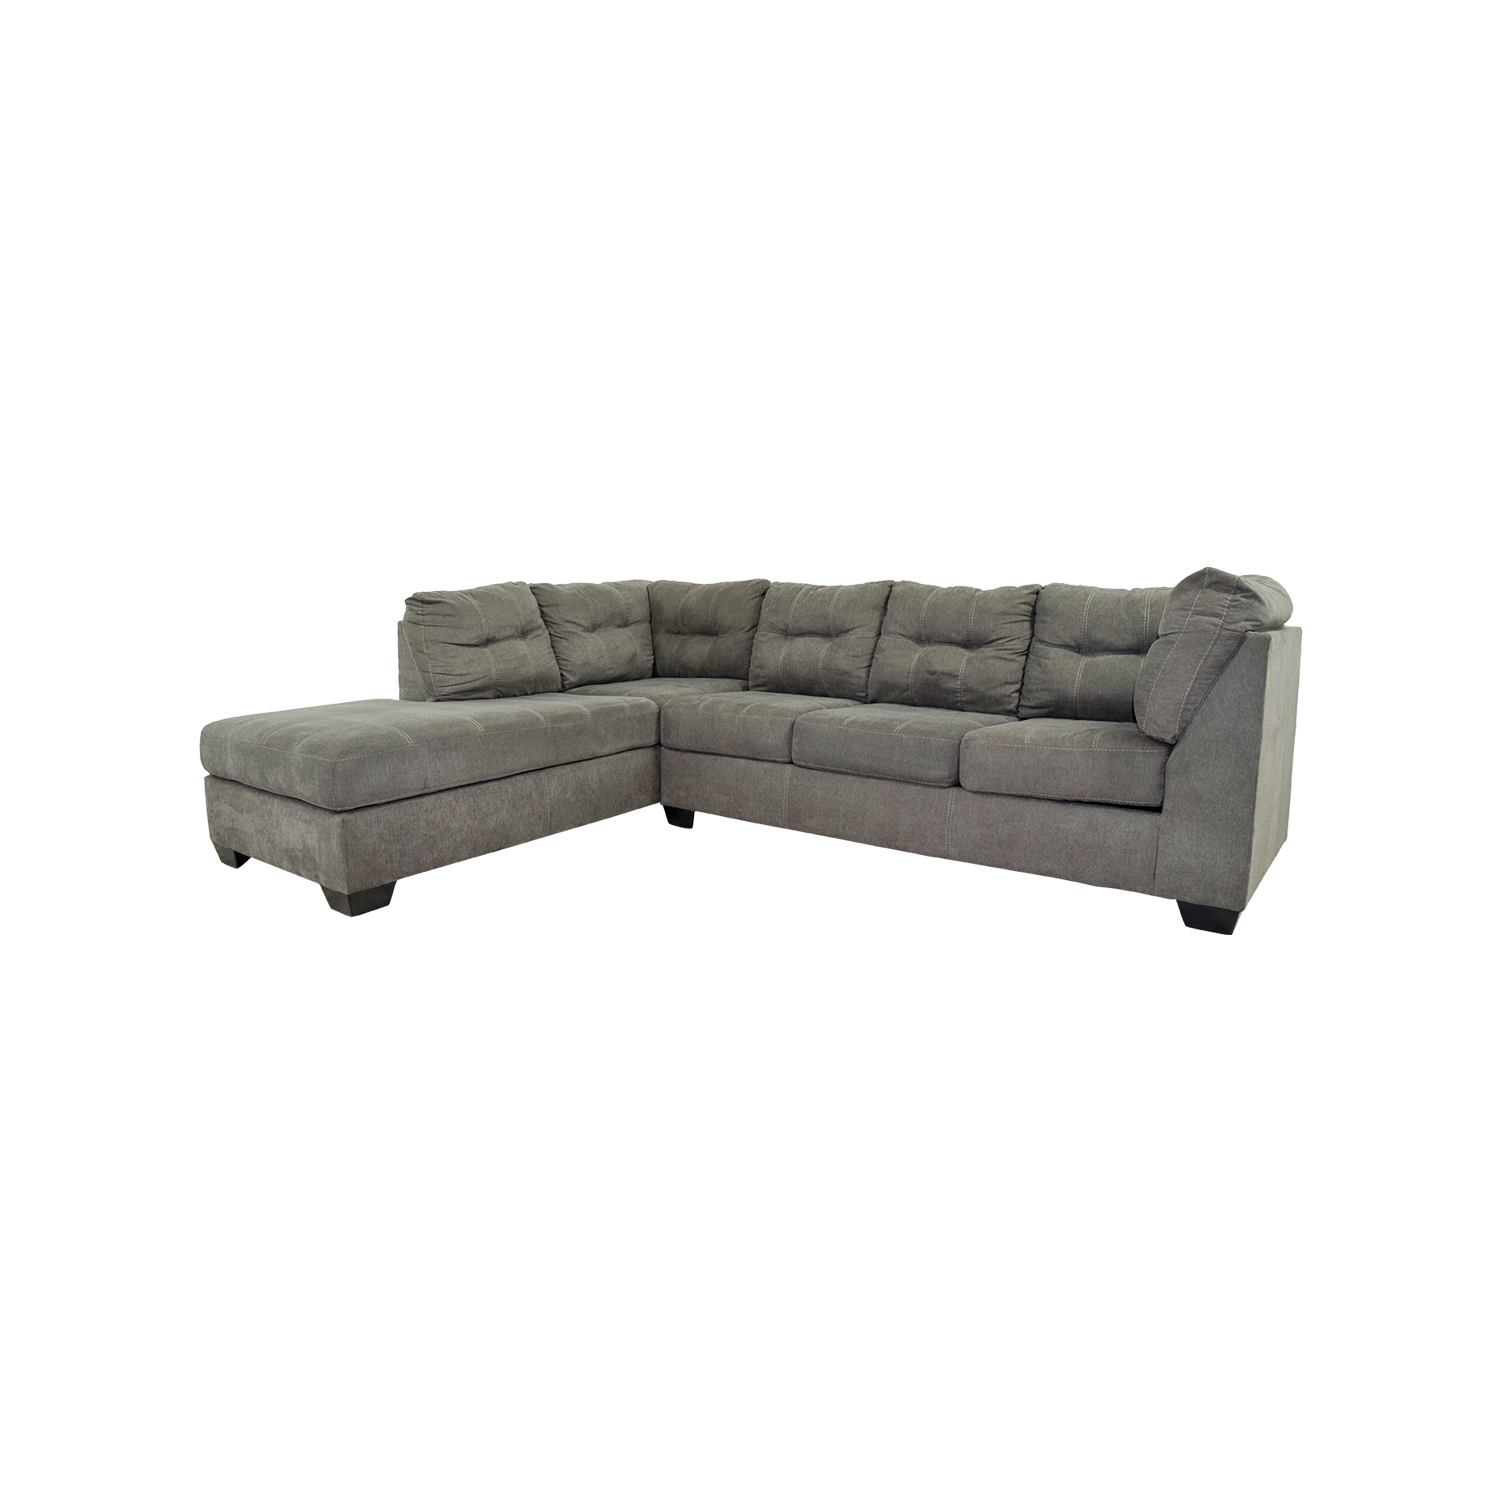 buy Mercury Row Mercury Row Cornett Charcoal Sectional online